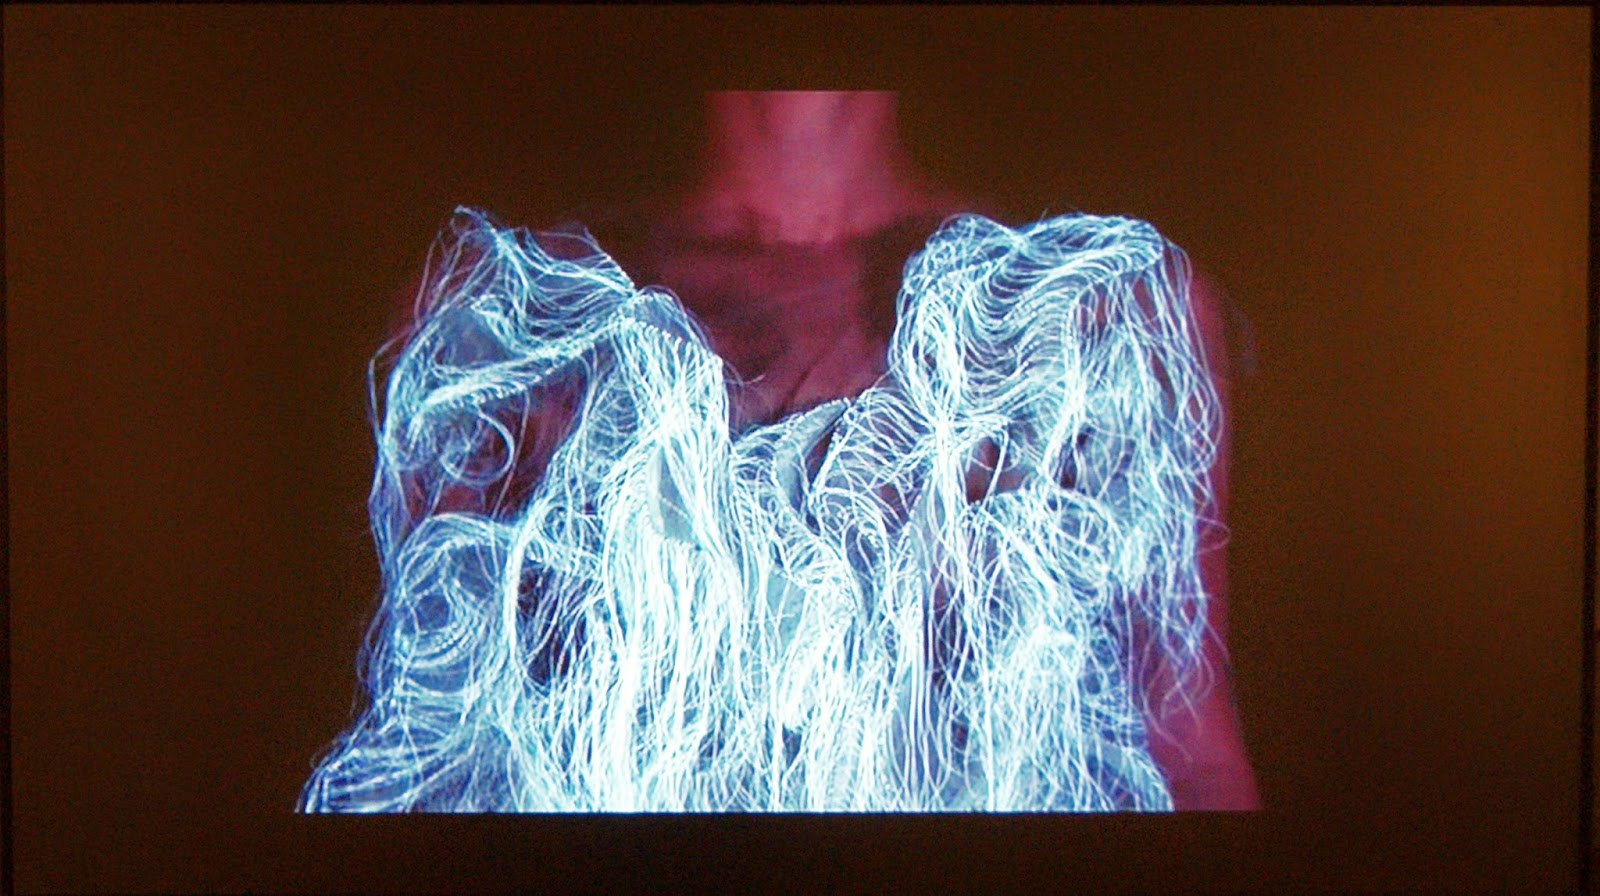 Fashion The Intangible: the conceptual clothing of Ying Gao exhibition at The Textile Museum of Canada in Toronto, art, culture, exhibit, vinly, latex, Melanie_ps, The Purple Scarf, Canada, designer